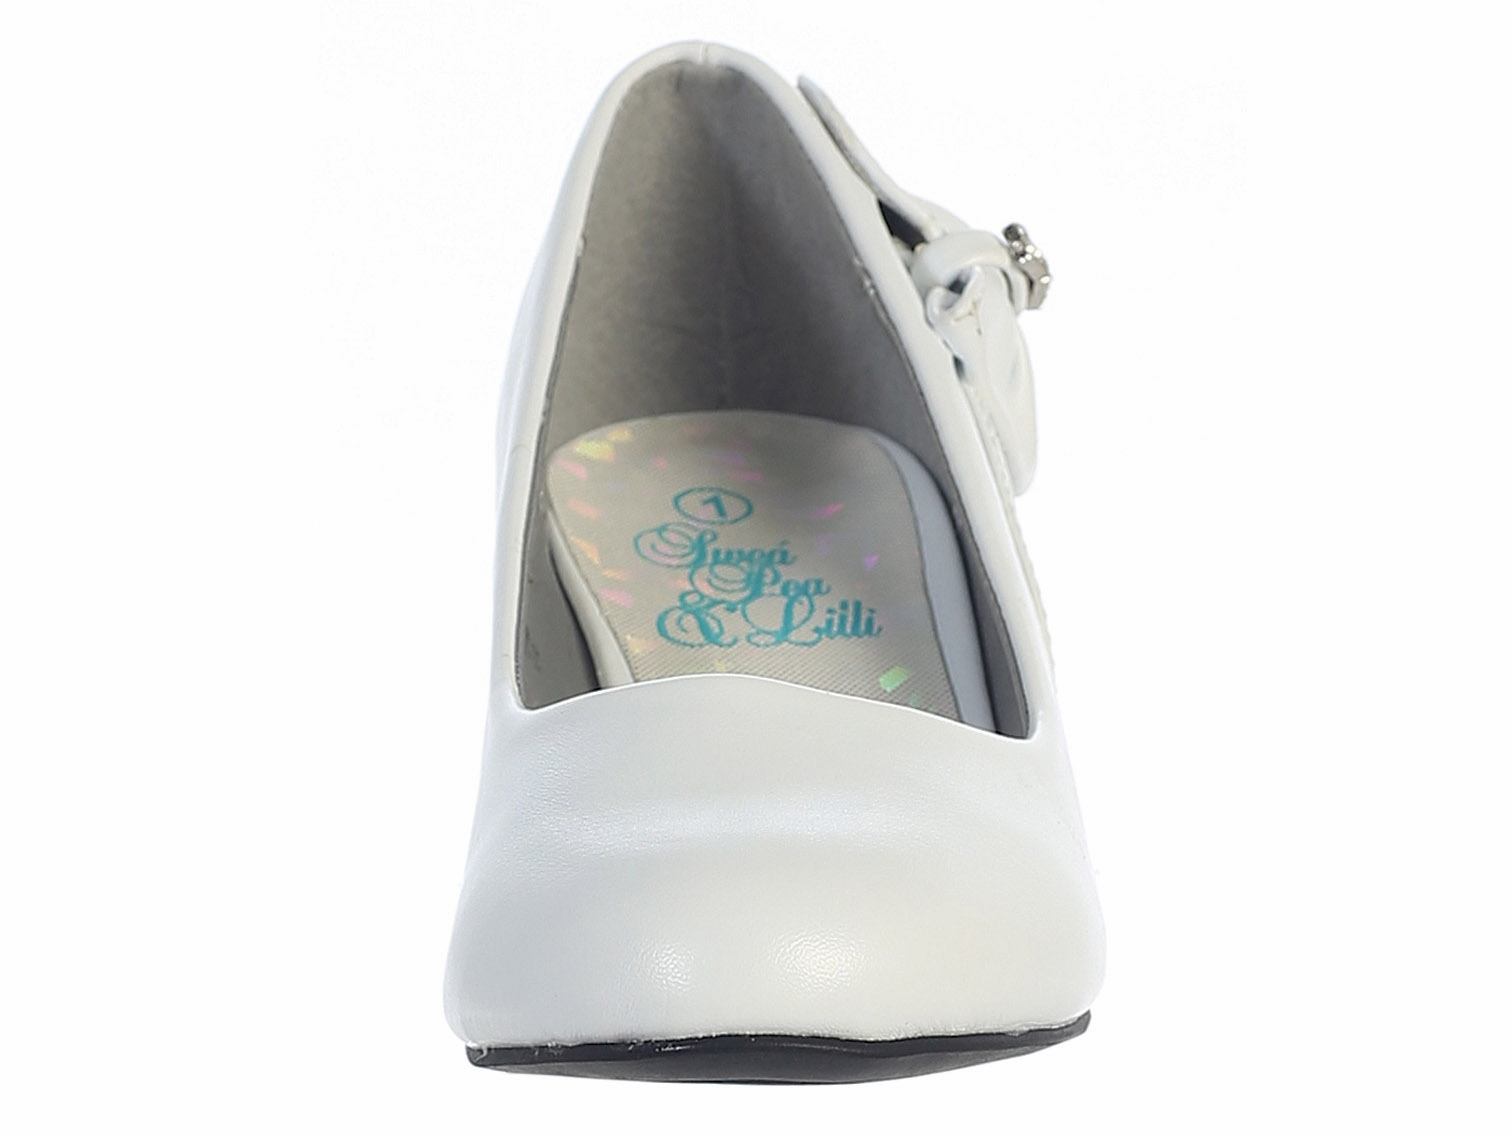 cdd8b6d8c558 ... Shoes   Kids White Wedge Shoe. Click to Enlarge Click to Enlarge ...